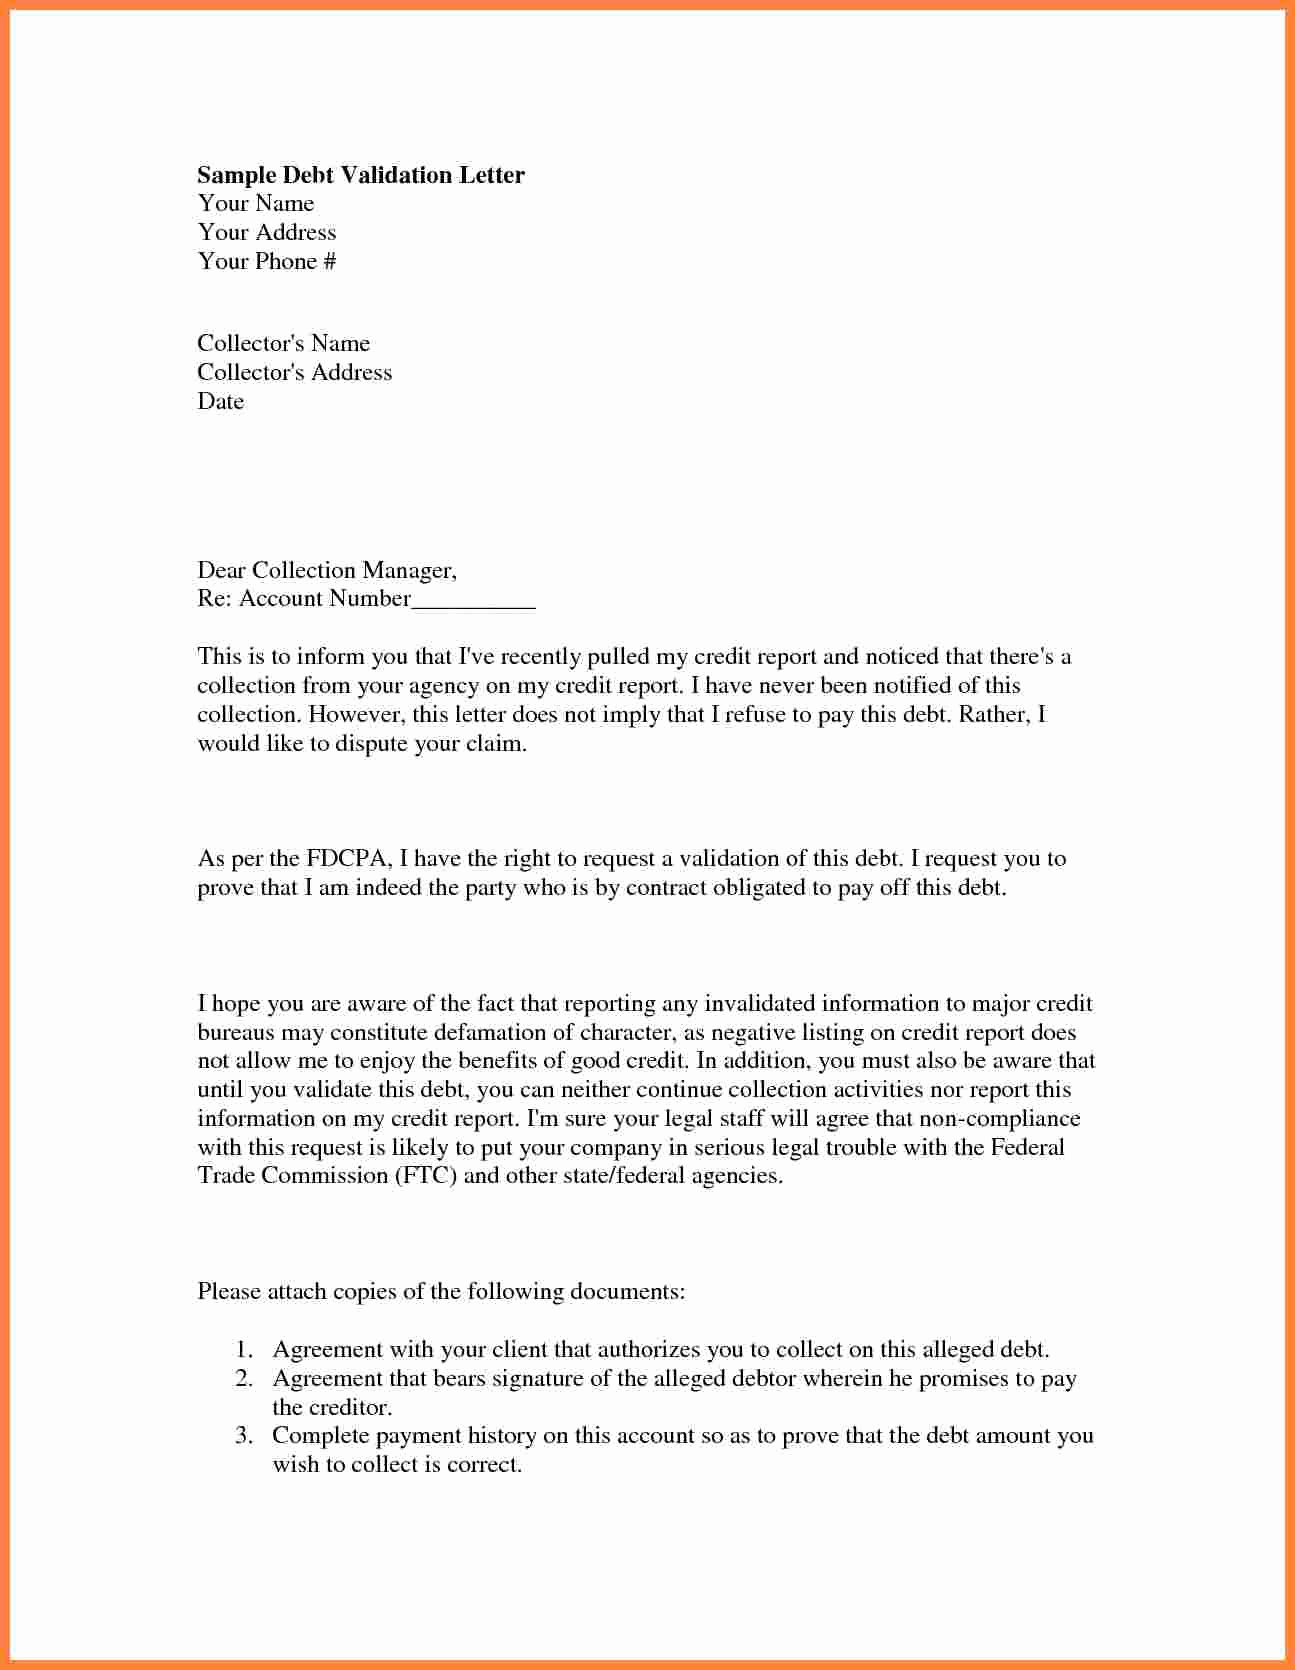 Debt Validation Letter Template Beautiful 5 I Have A Collection On My Credit Report